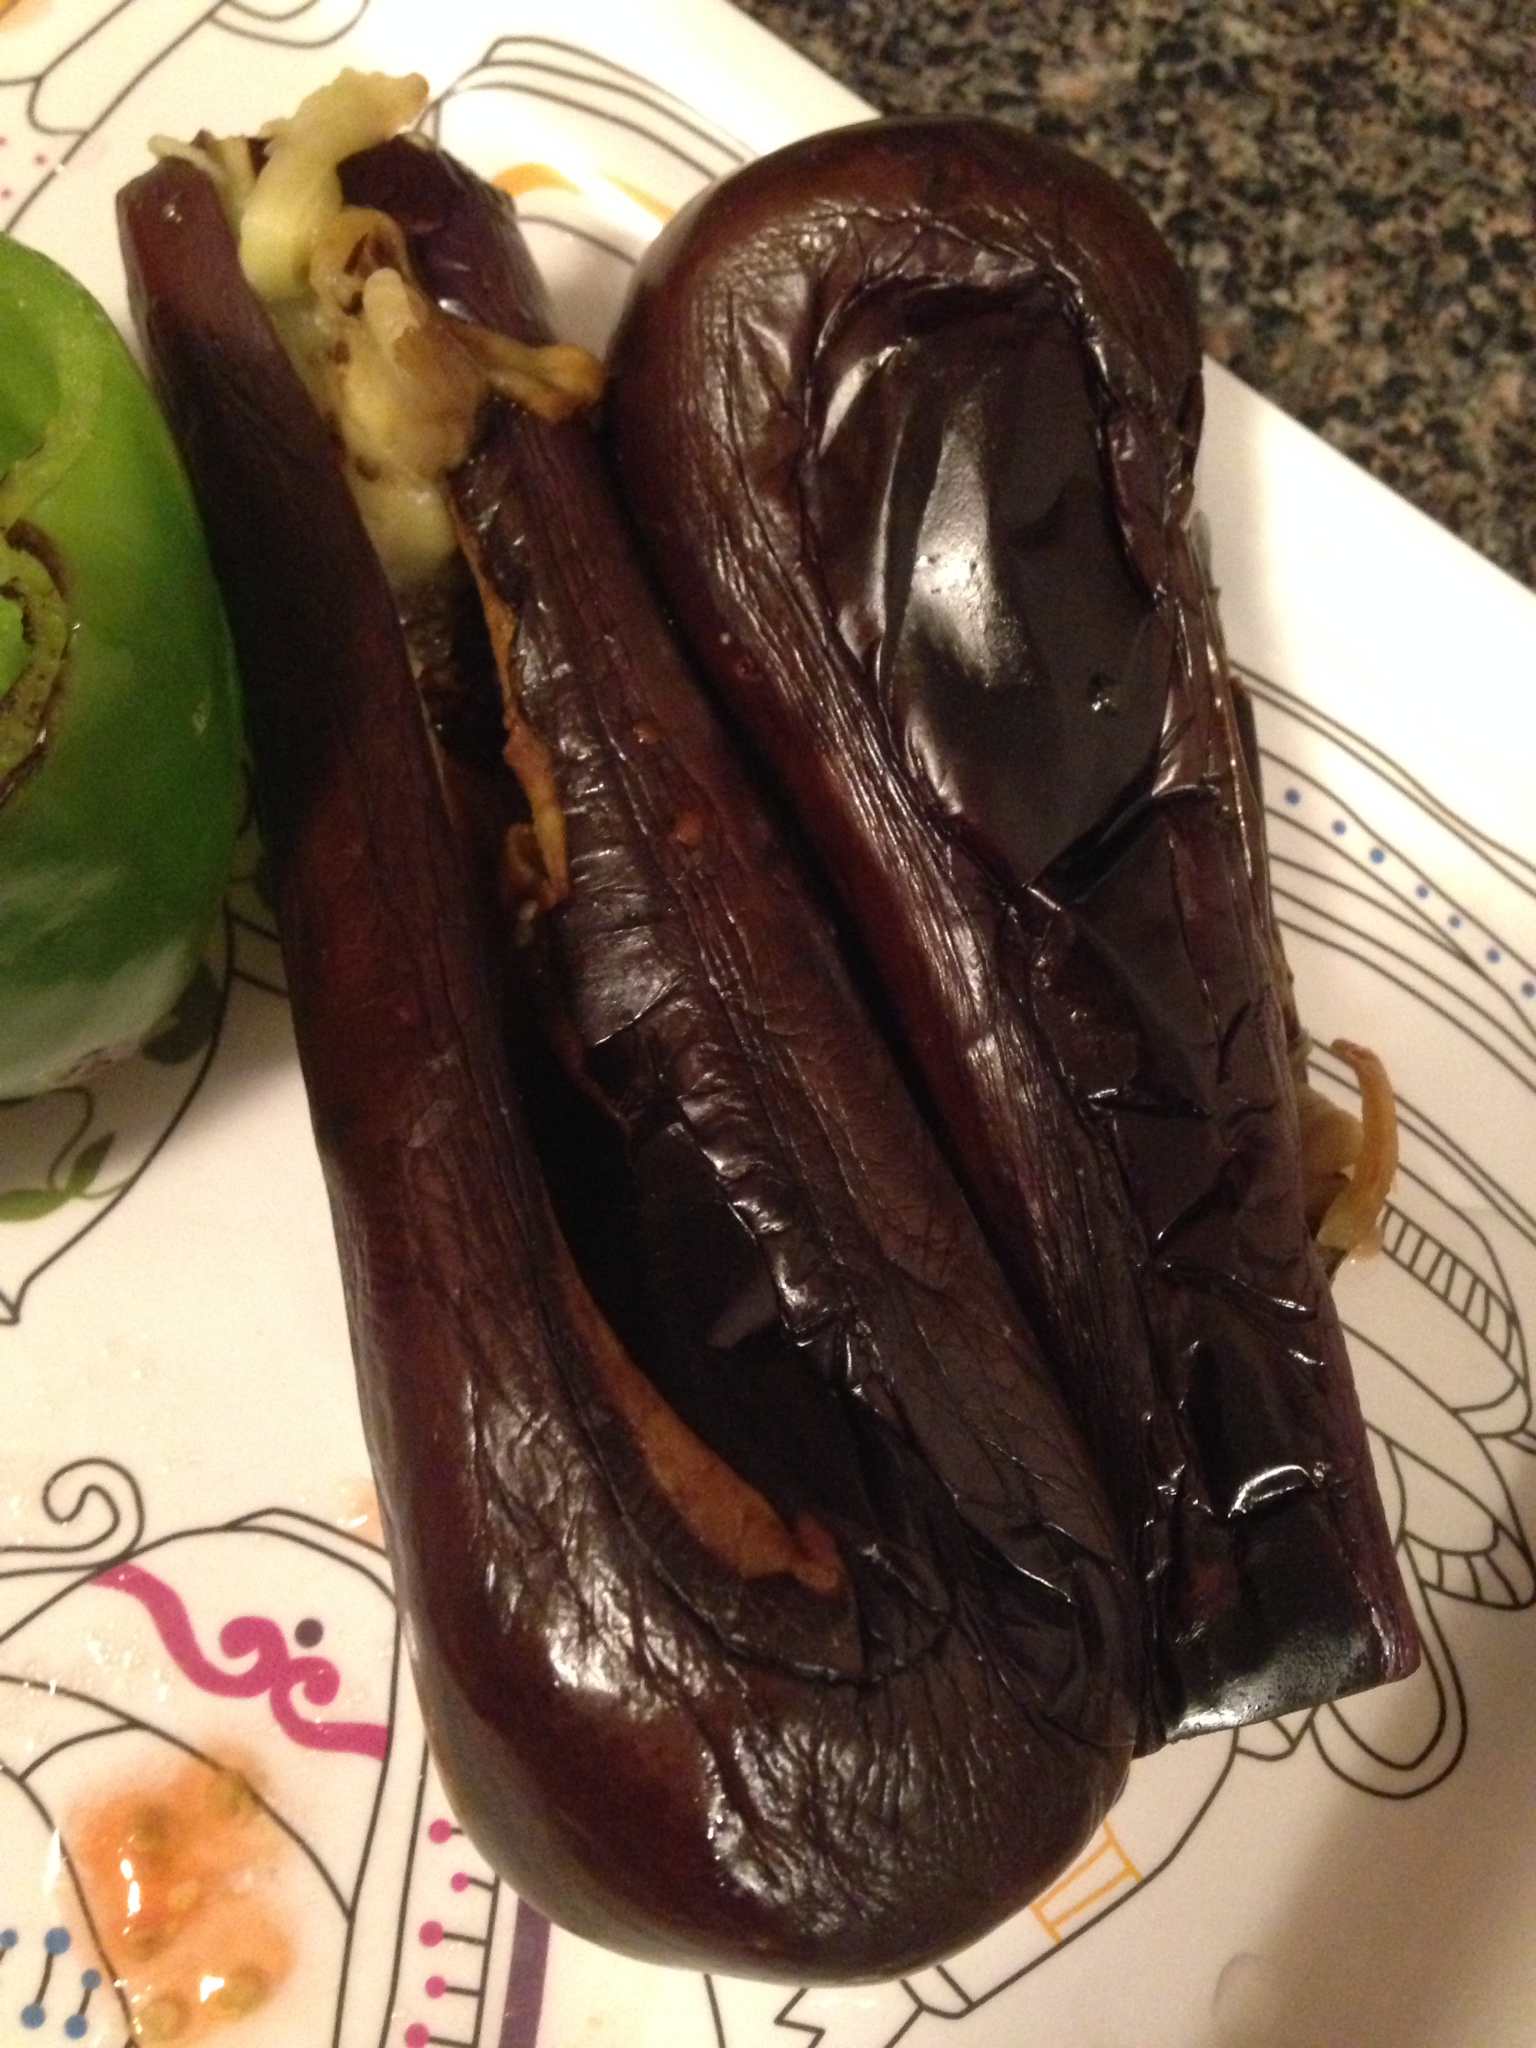 The eggplants are ready to go